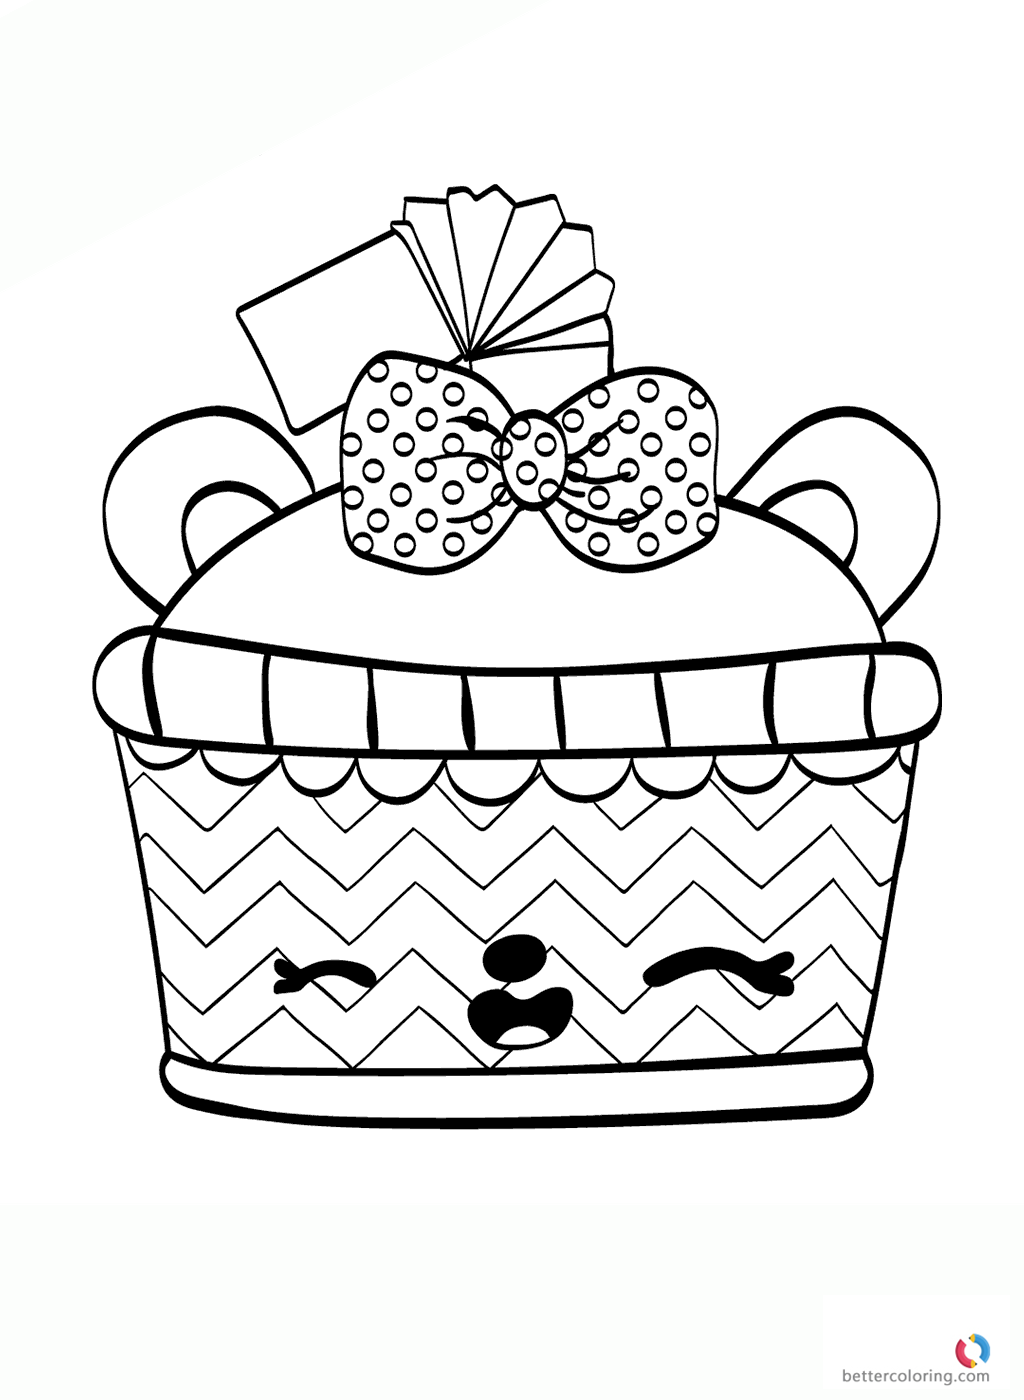 Num noms colouring page cassie cola free printable for Num noms coloring pages free